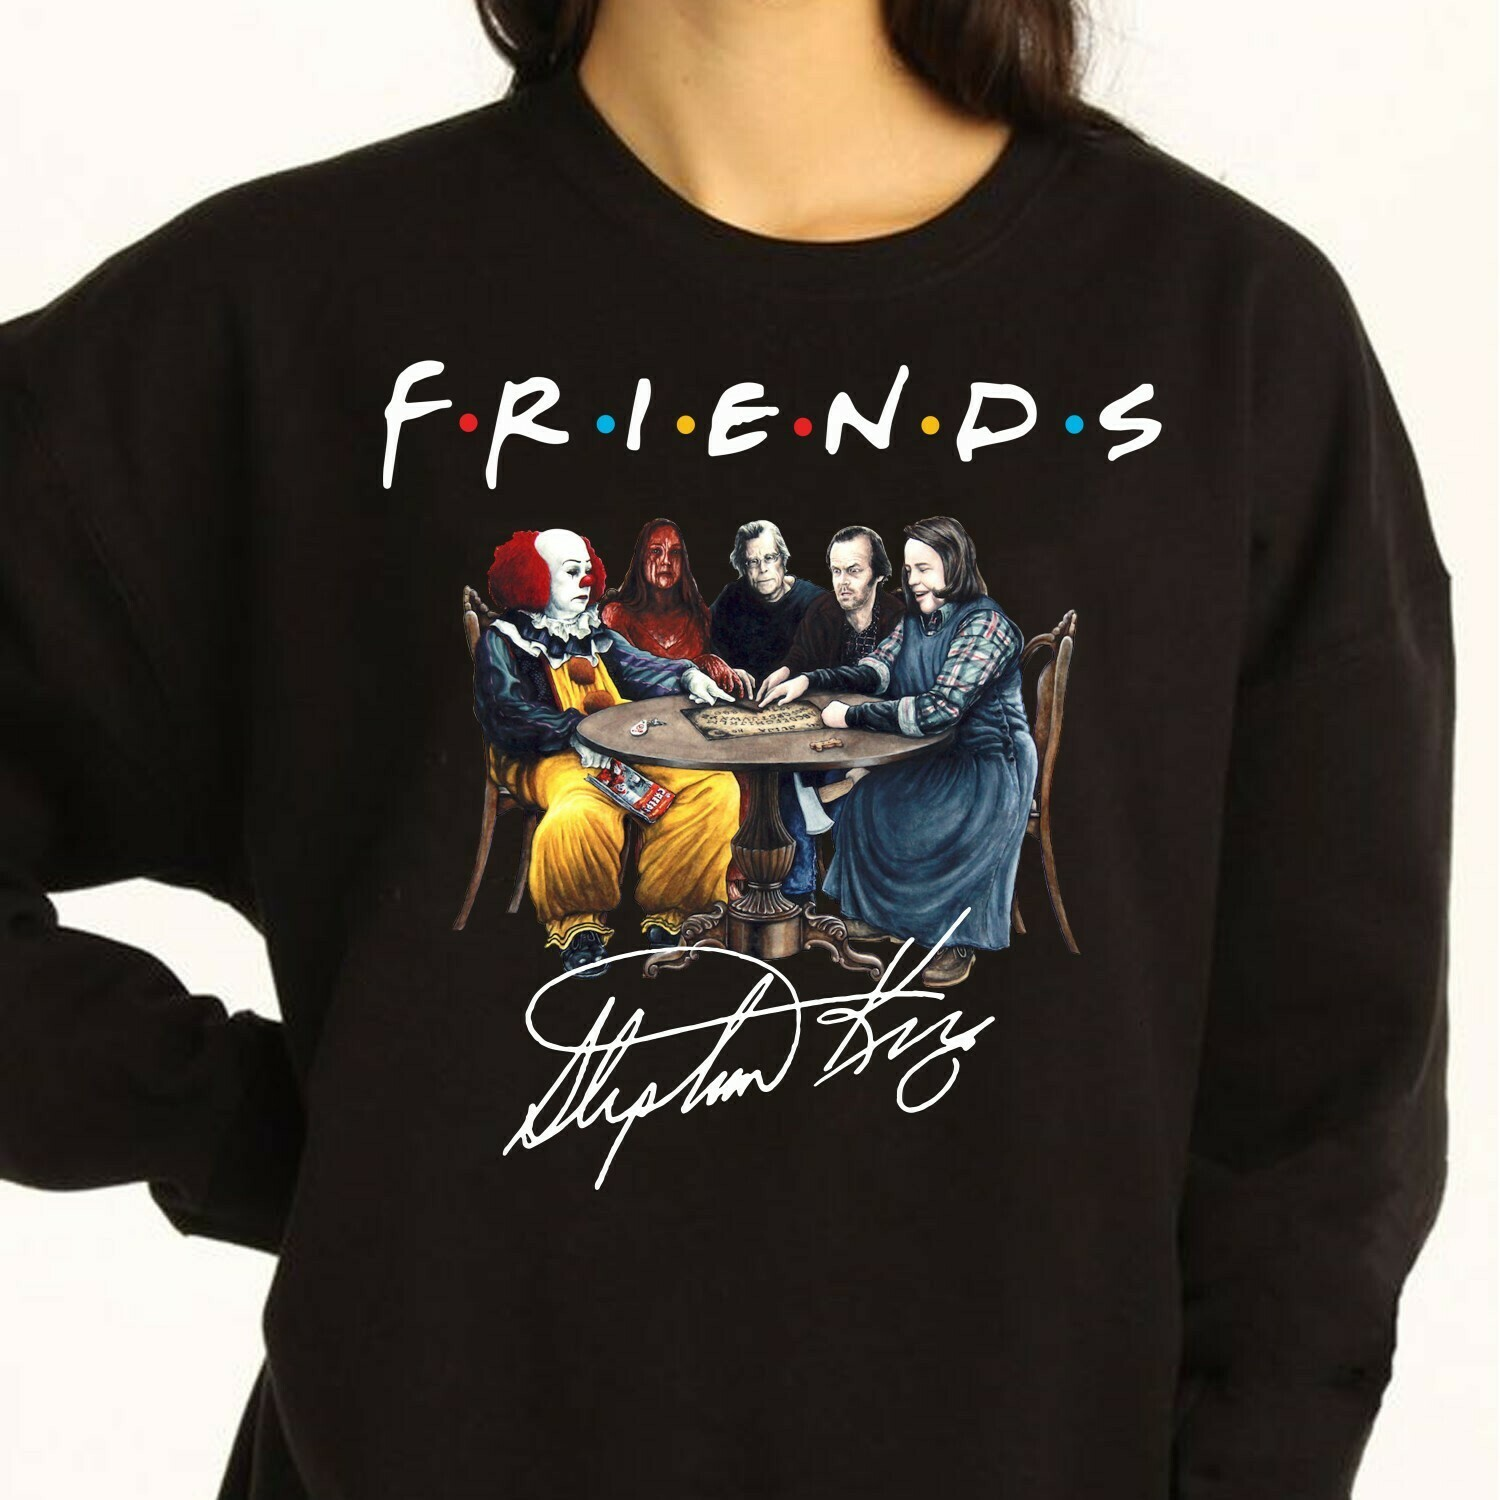 Friends IT Pennywise Version Signature We All Float Down Here Squad Villains Halloween Horror Character Movie Mashup Halloween Squad T-Shirt Long Sleeve Sweatshirt Hoodie Jolly Family Gifts